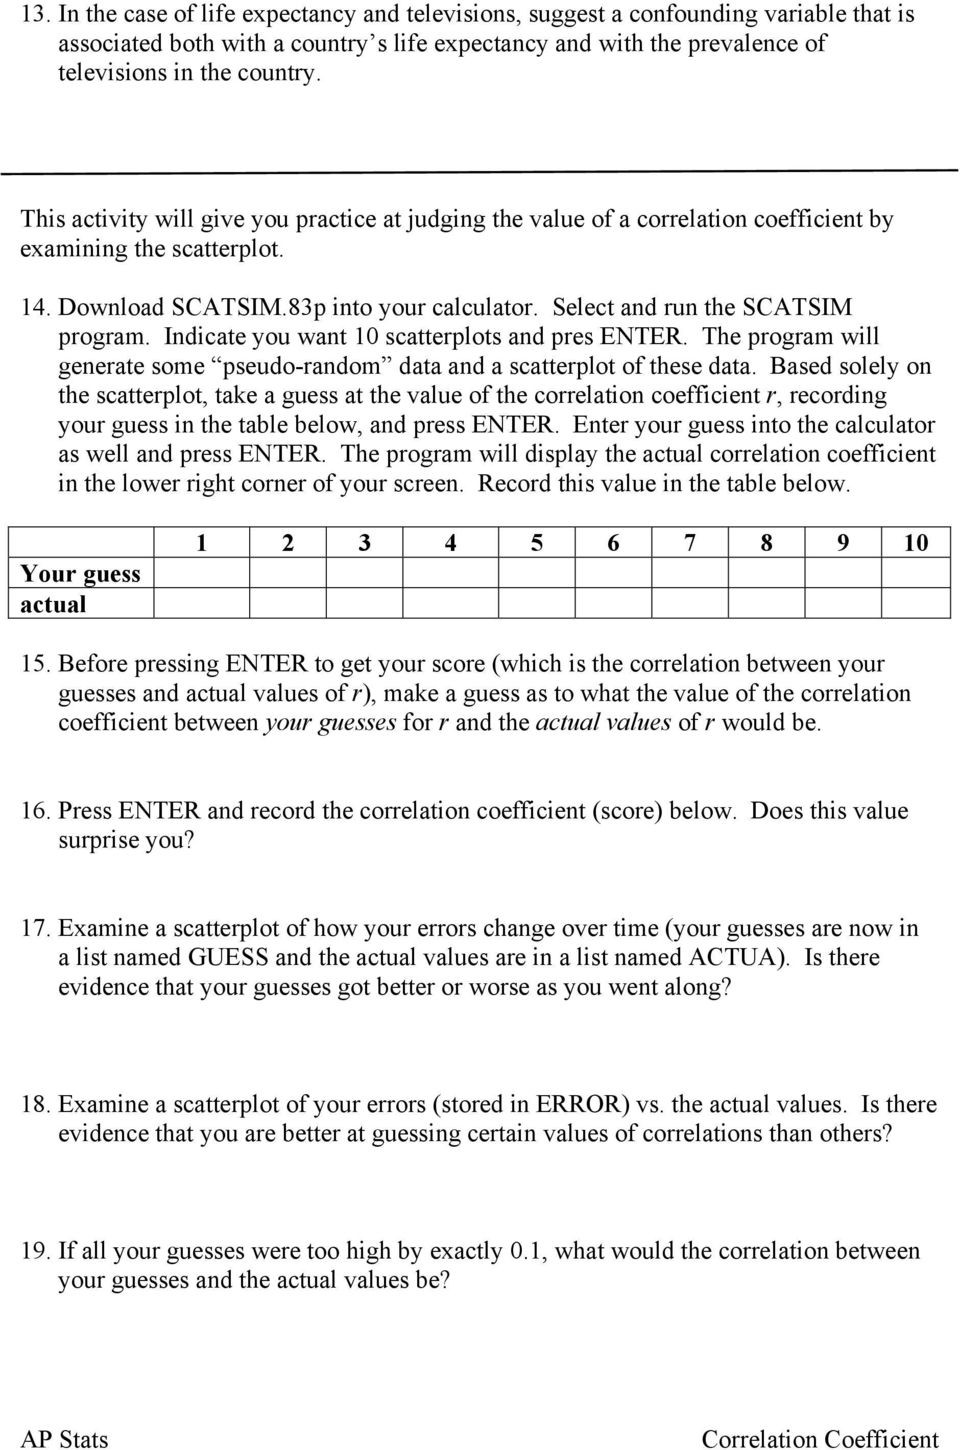 Correlation Vs Causation Worksheet Name Look Back On the Nine Scatterplots From the Previous